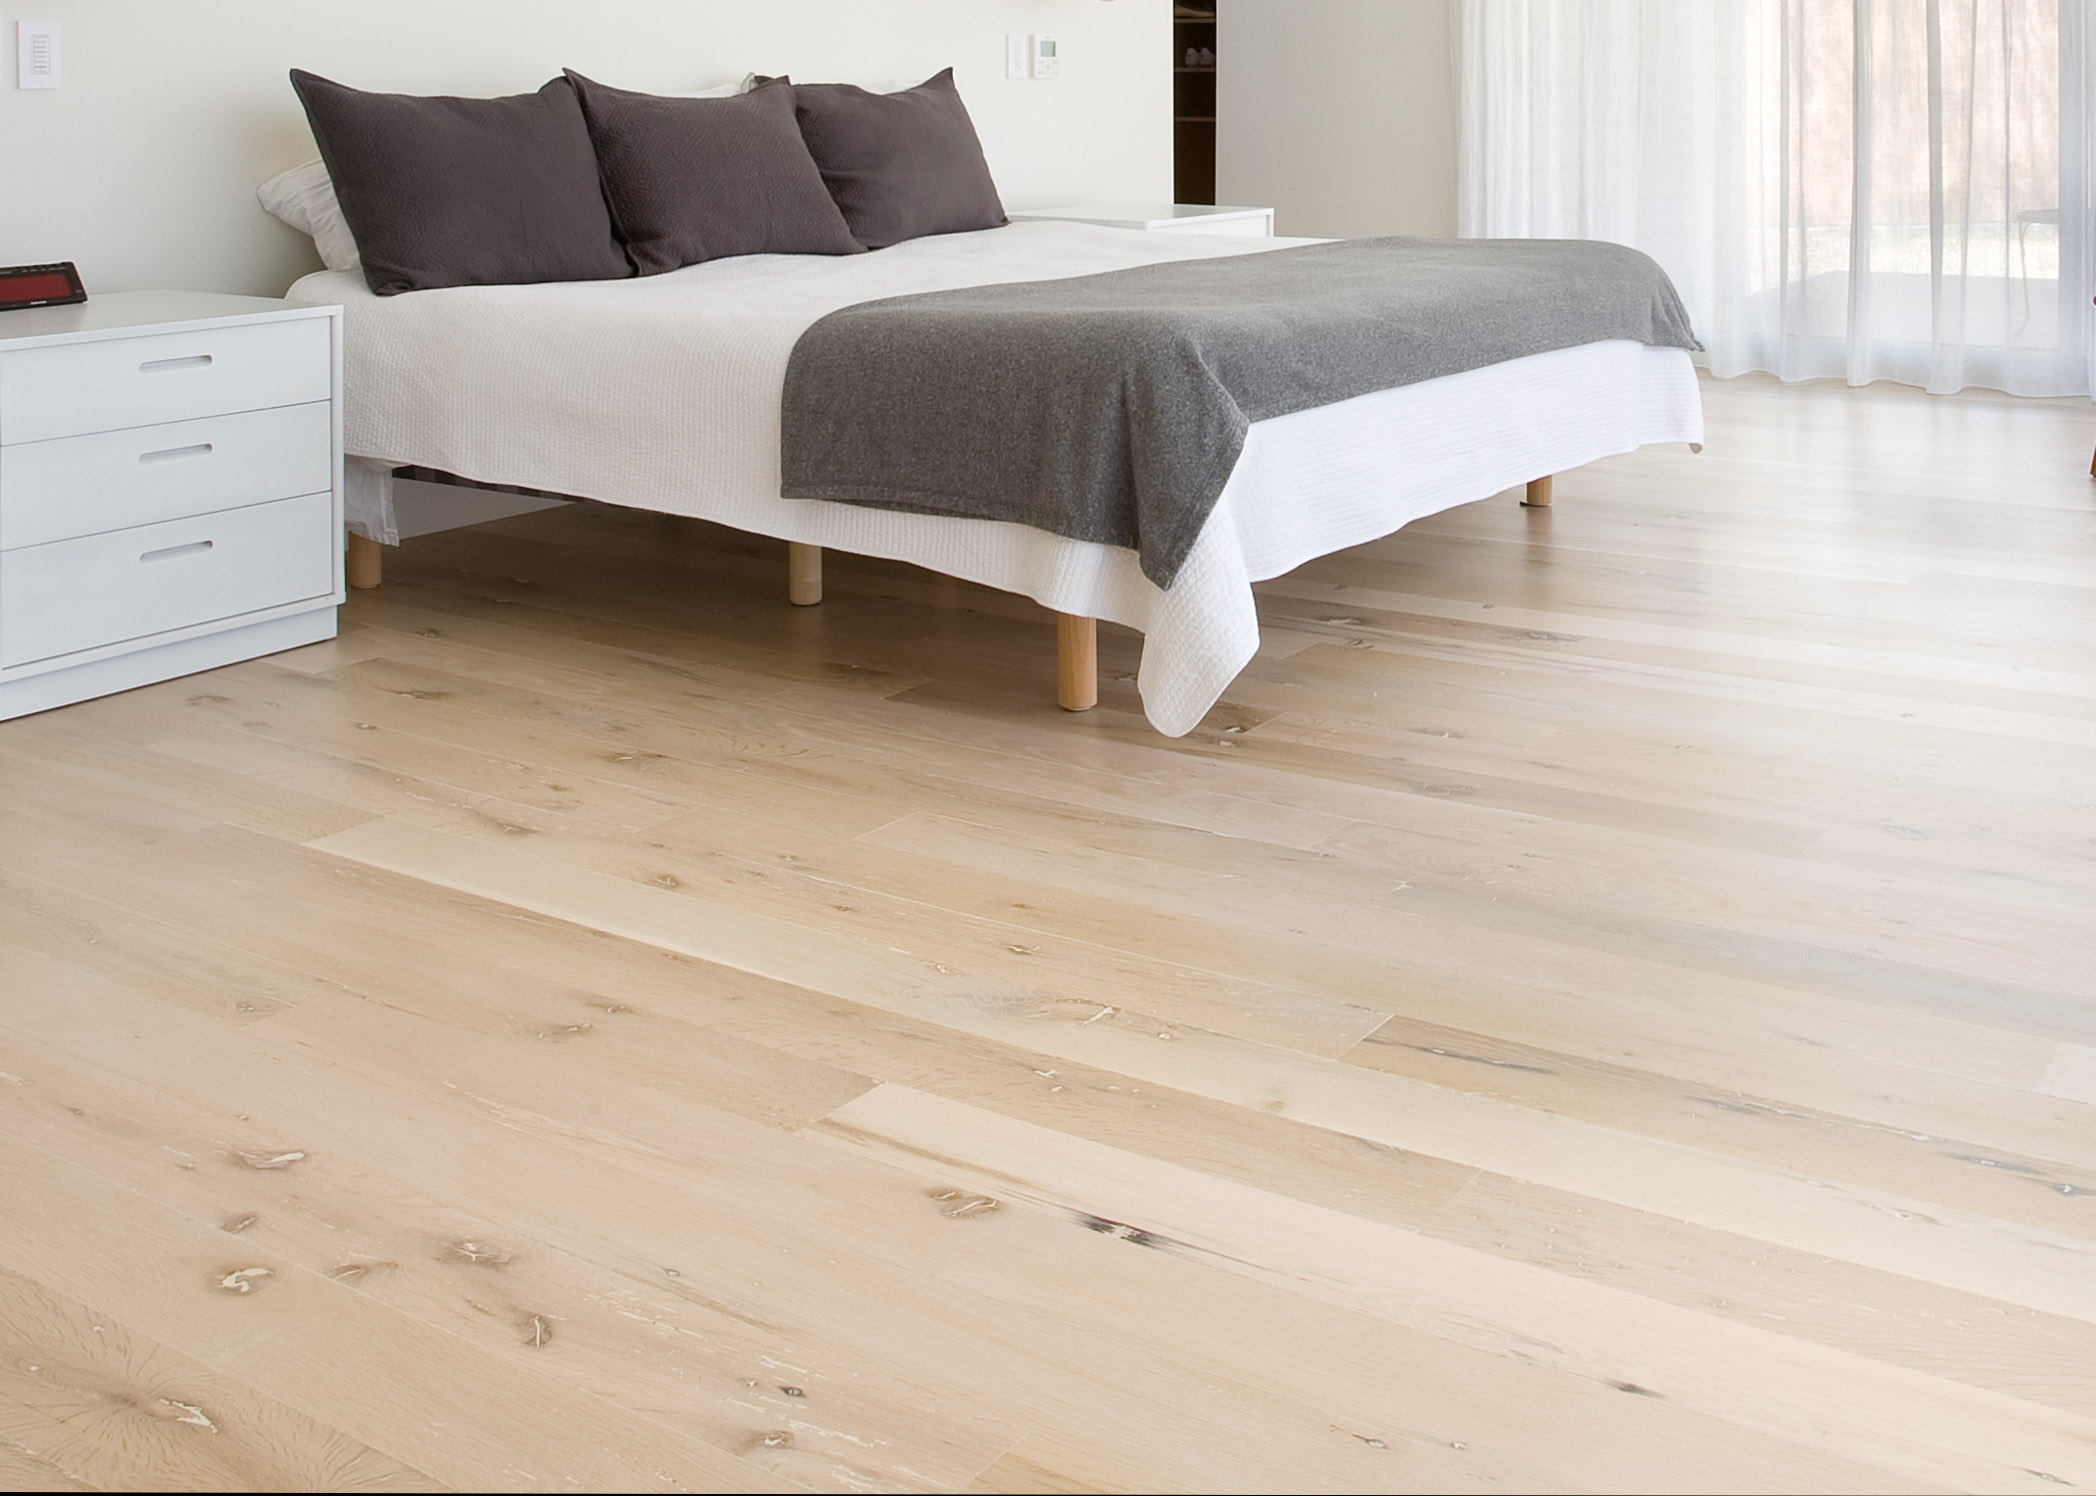 stunning hardwood flooring from reclaimed white oak timbers. Black Bedroom Furniture Sets. Home Design Ideas